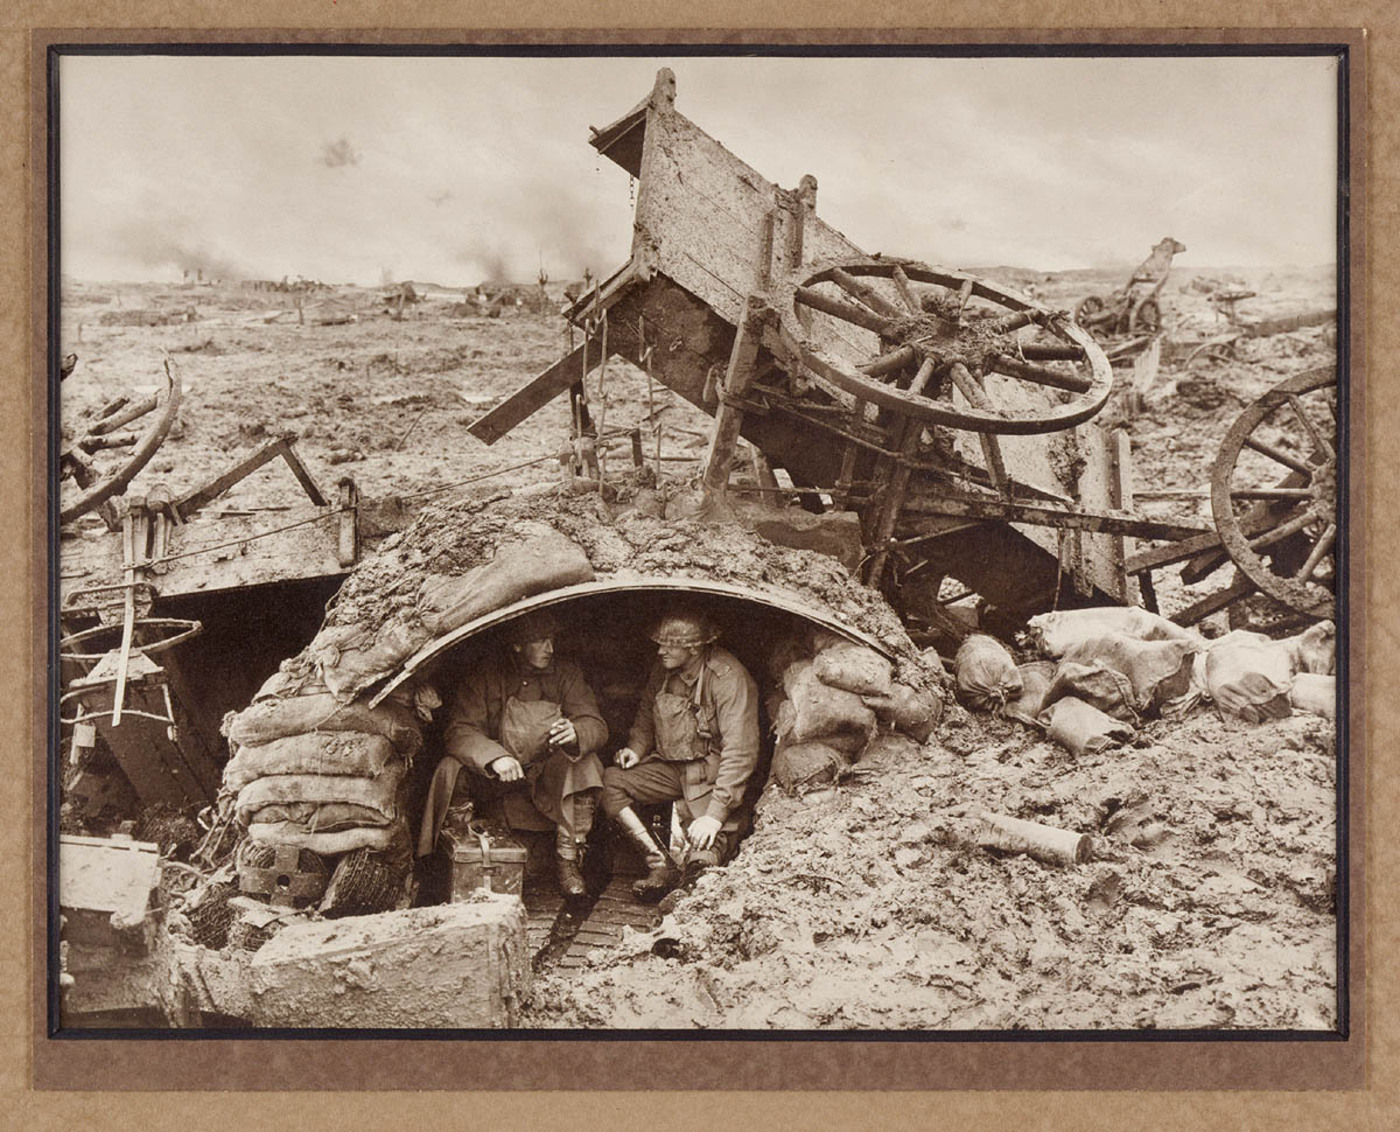 A windy outpost on Westhoeck Ridge, 1917. Photograph by Frank Hurley.